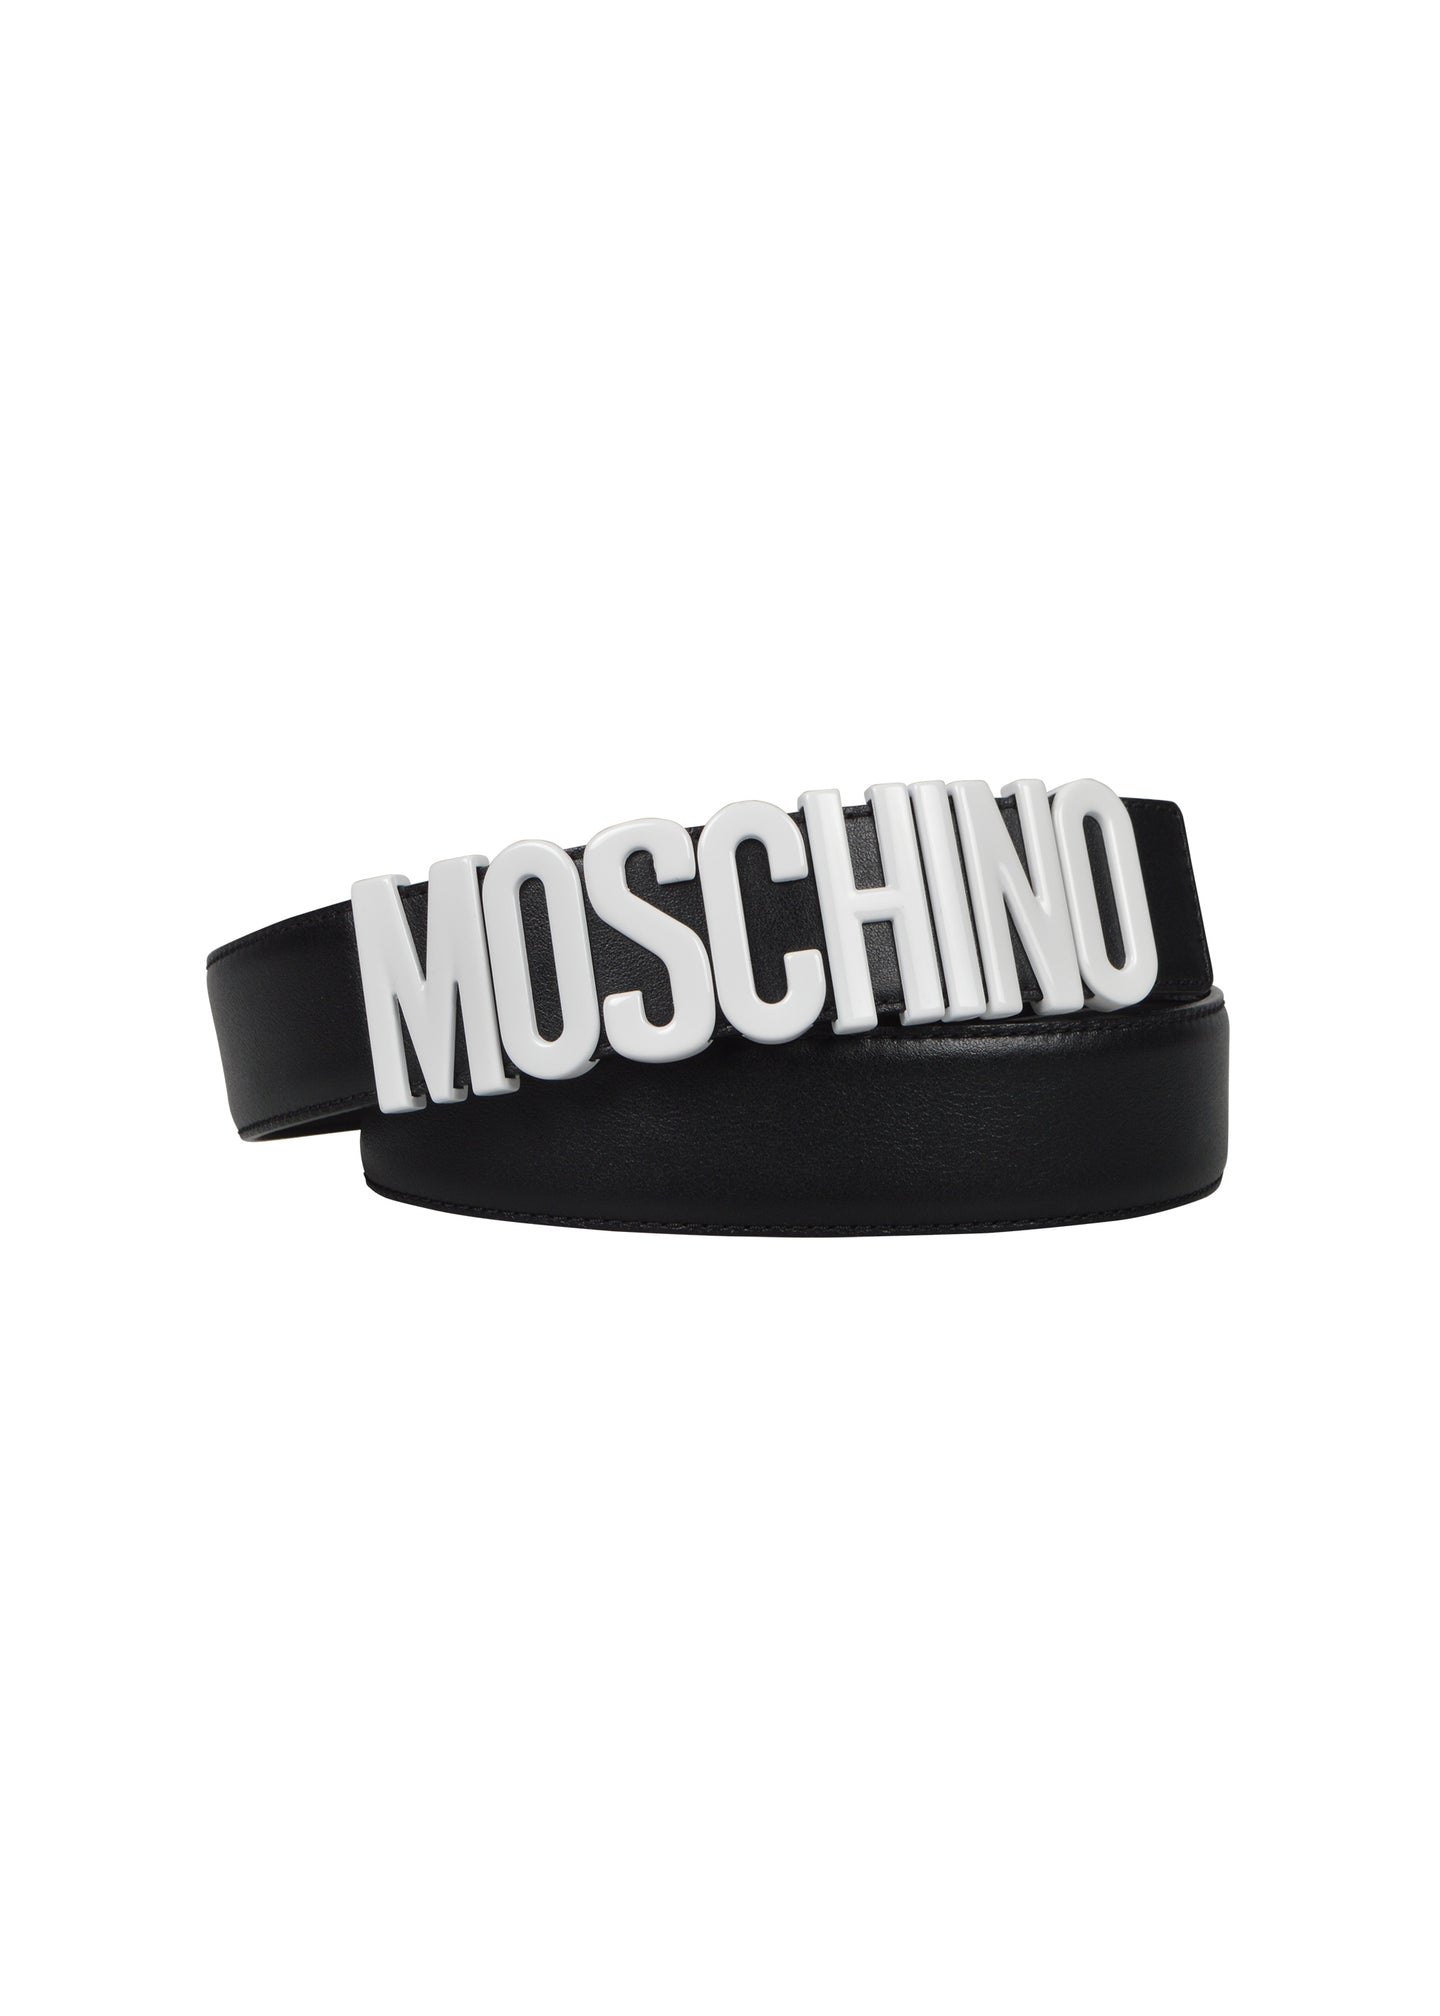 Moschino - Iconic Moschino Buckle Belt - 093003 - 171Z1A8014480011 - Black White